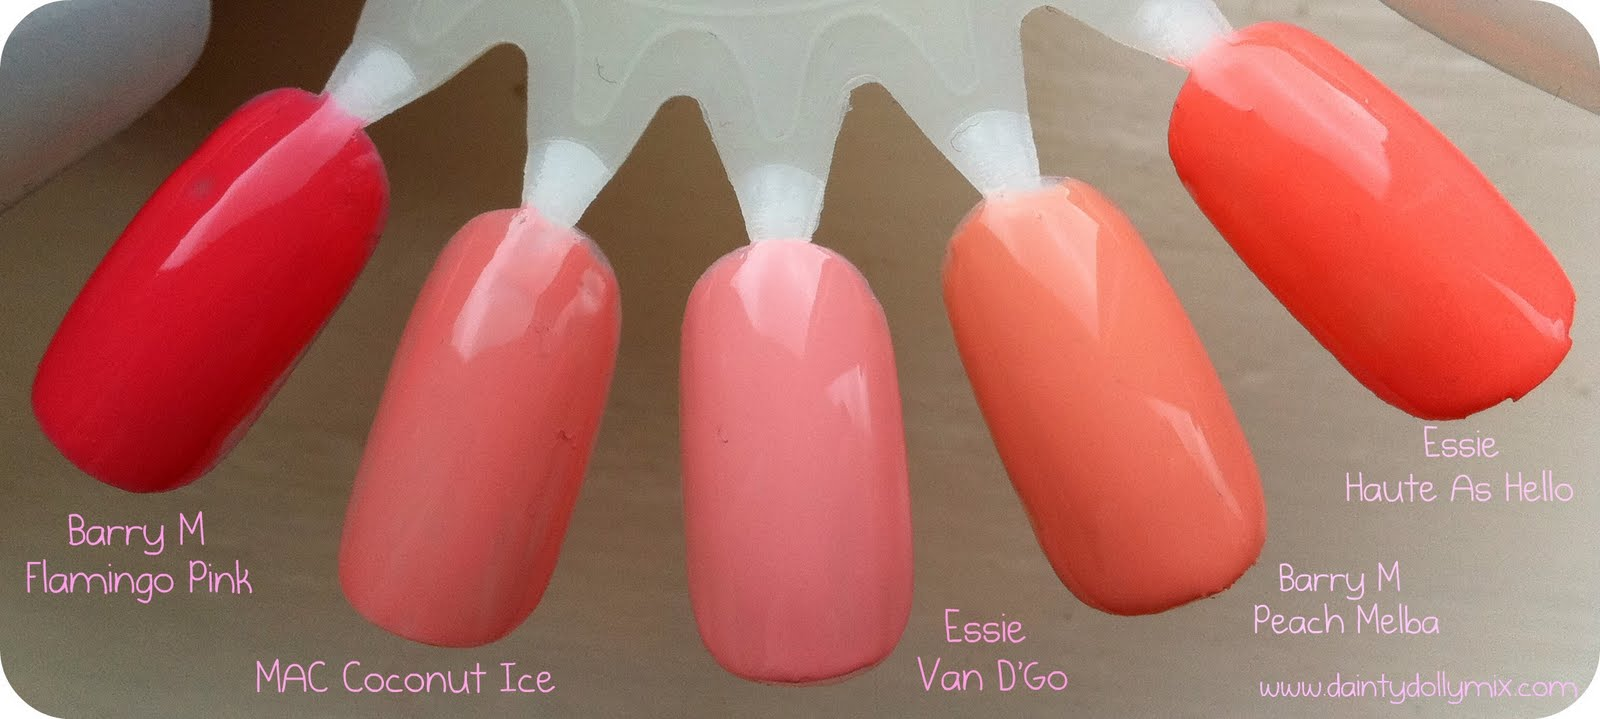 Dainty Dollymix UK Beauty Blog: Top 5 Summer Nail Polishes